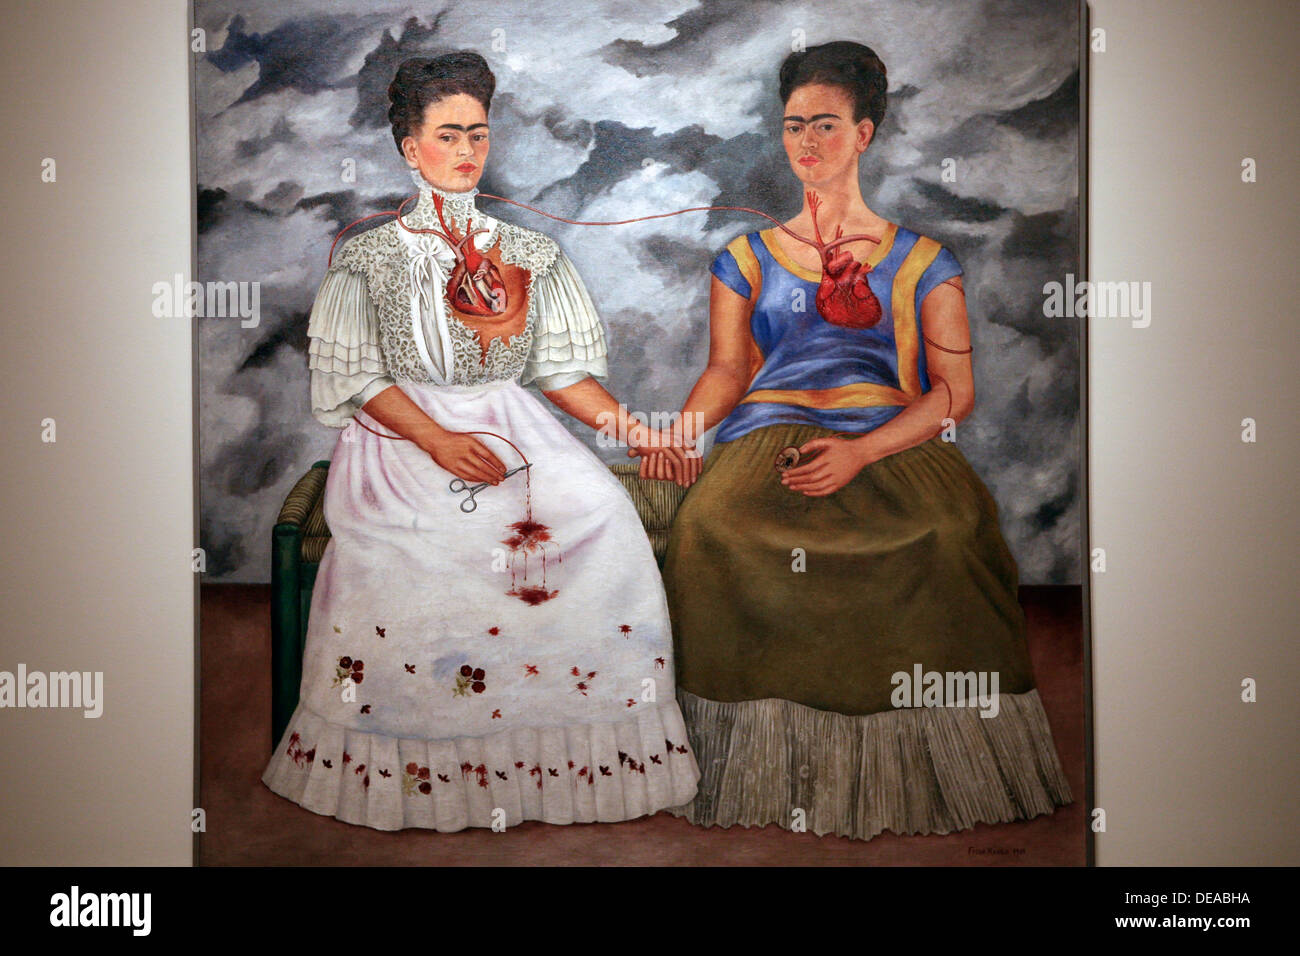 Frida Kahlo. The Two Fridas. 1939. Oil on canvas. Mexico celebrates 100th anniversary of Frida Kahlo's birth - Stock Image